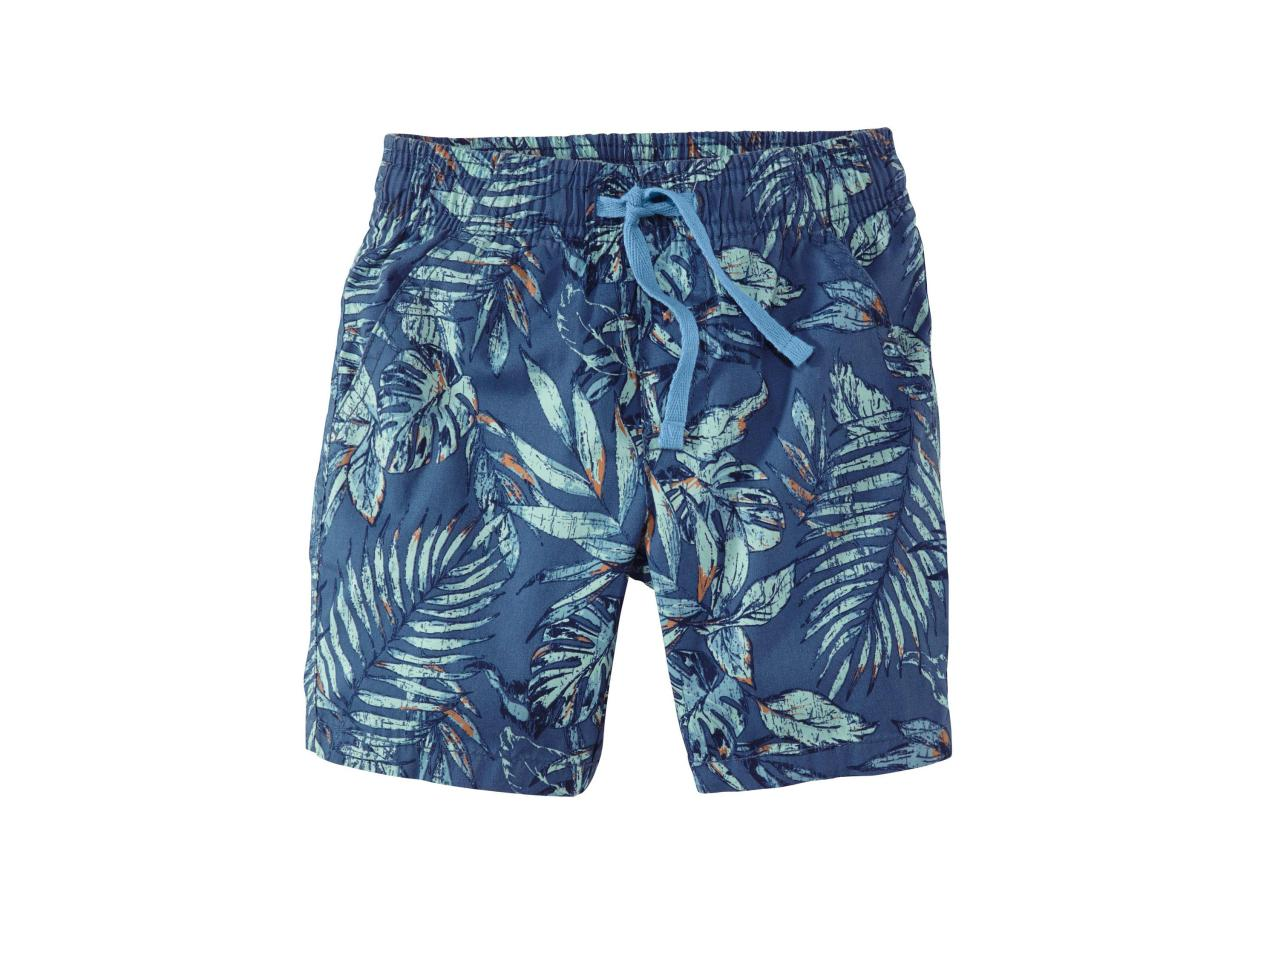 Beach Bum Bermuda Shorts are ready for all of your kid's summer adventures! These shorts have a professional finish featuring a pieced waistband, faux fly, front .